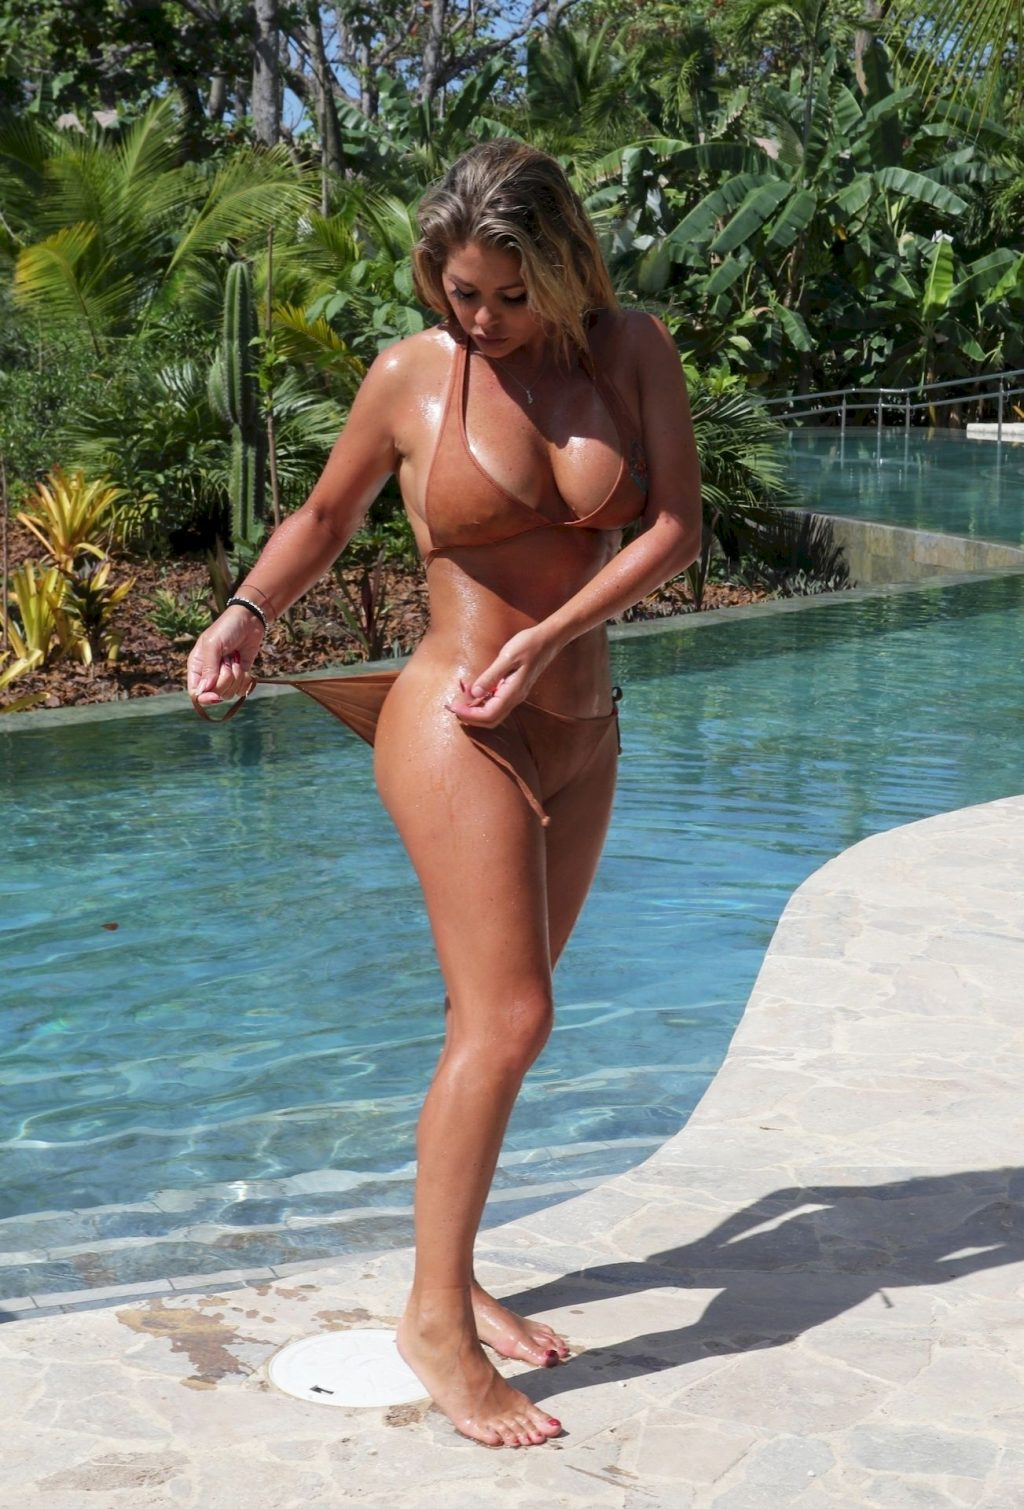 Bianca Gascoigne Shows Off Her Amazing Body in Thailand (13 Photos)